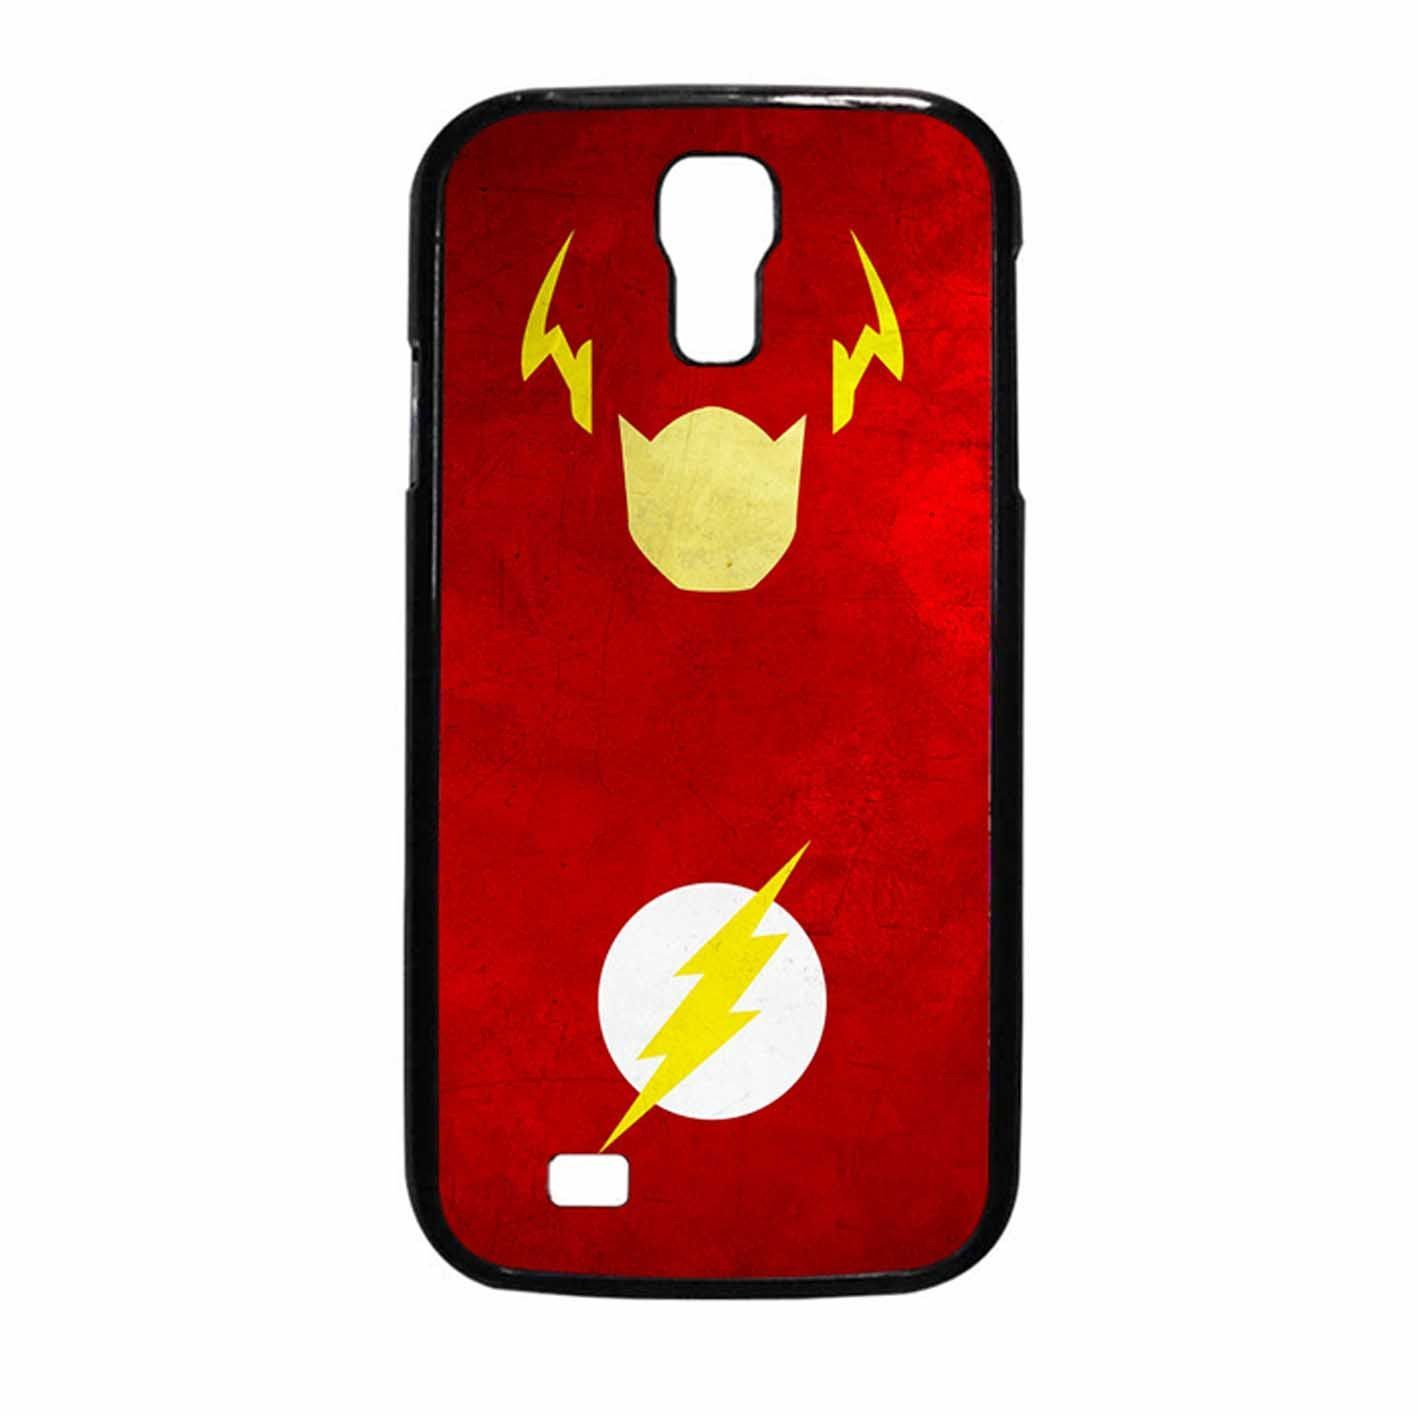 Pics photos batman logo evolution design for samsung galaxy case - Flash Superhero Logo Samsung Galaxy S4 Case